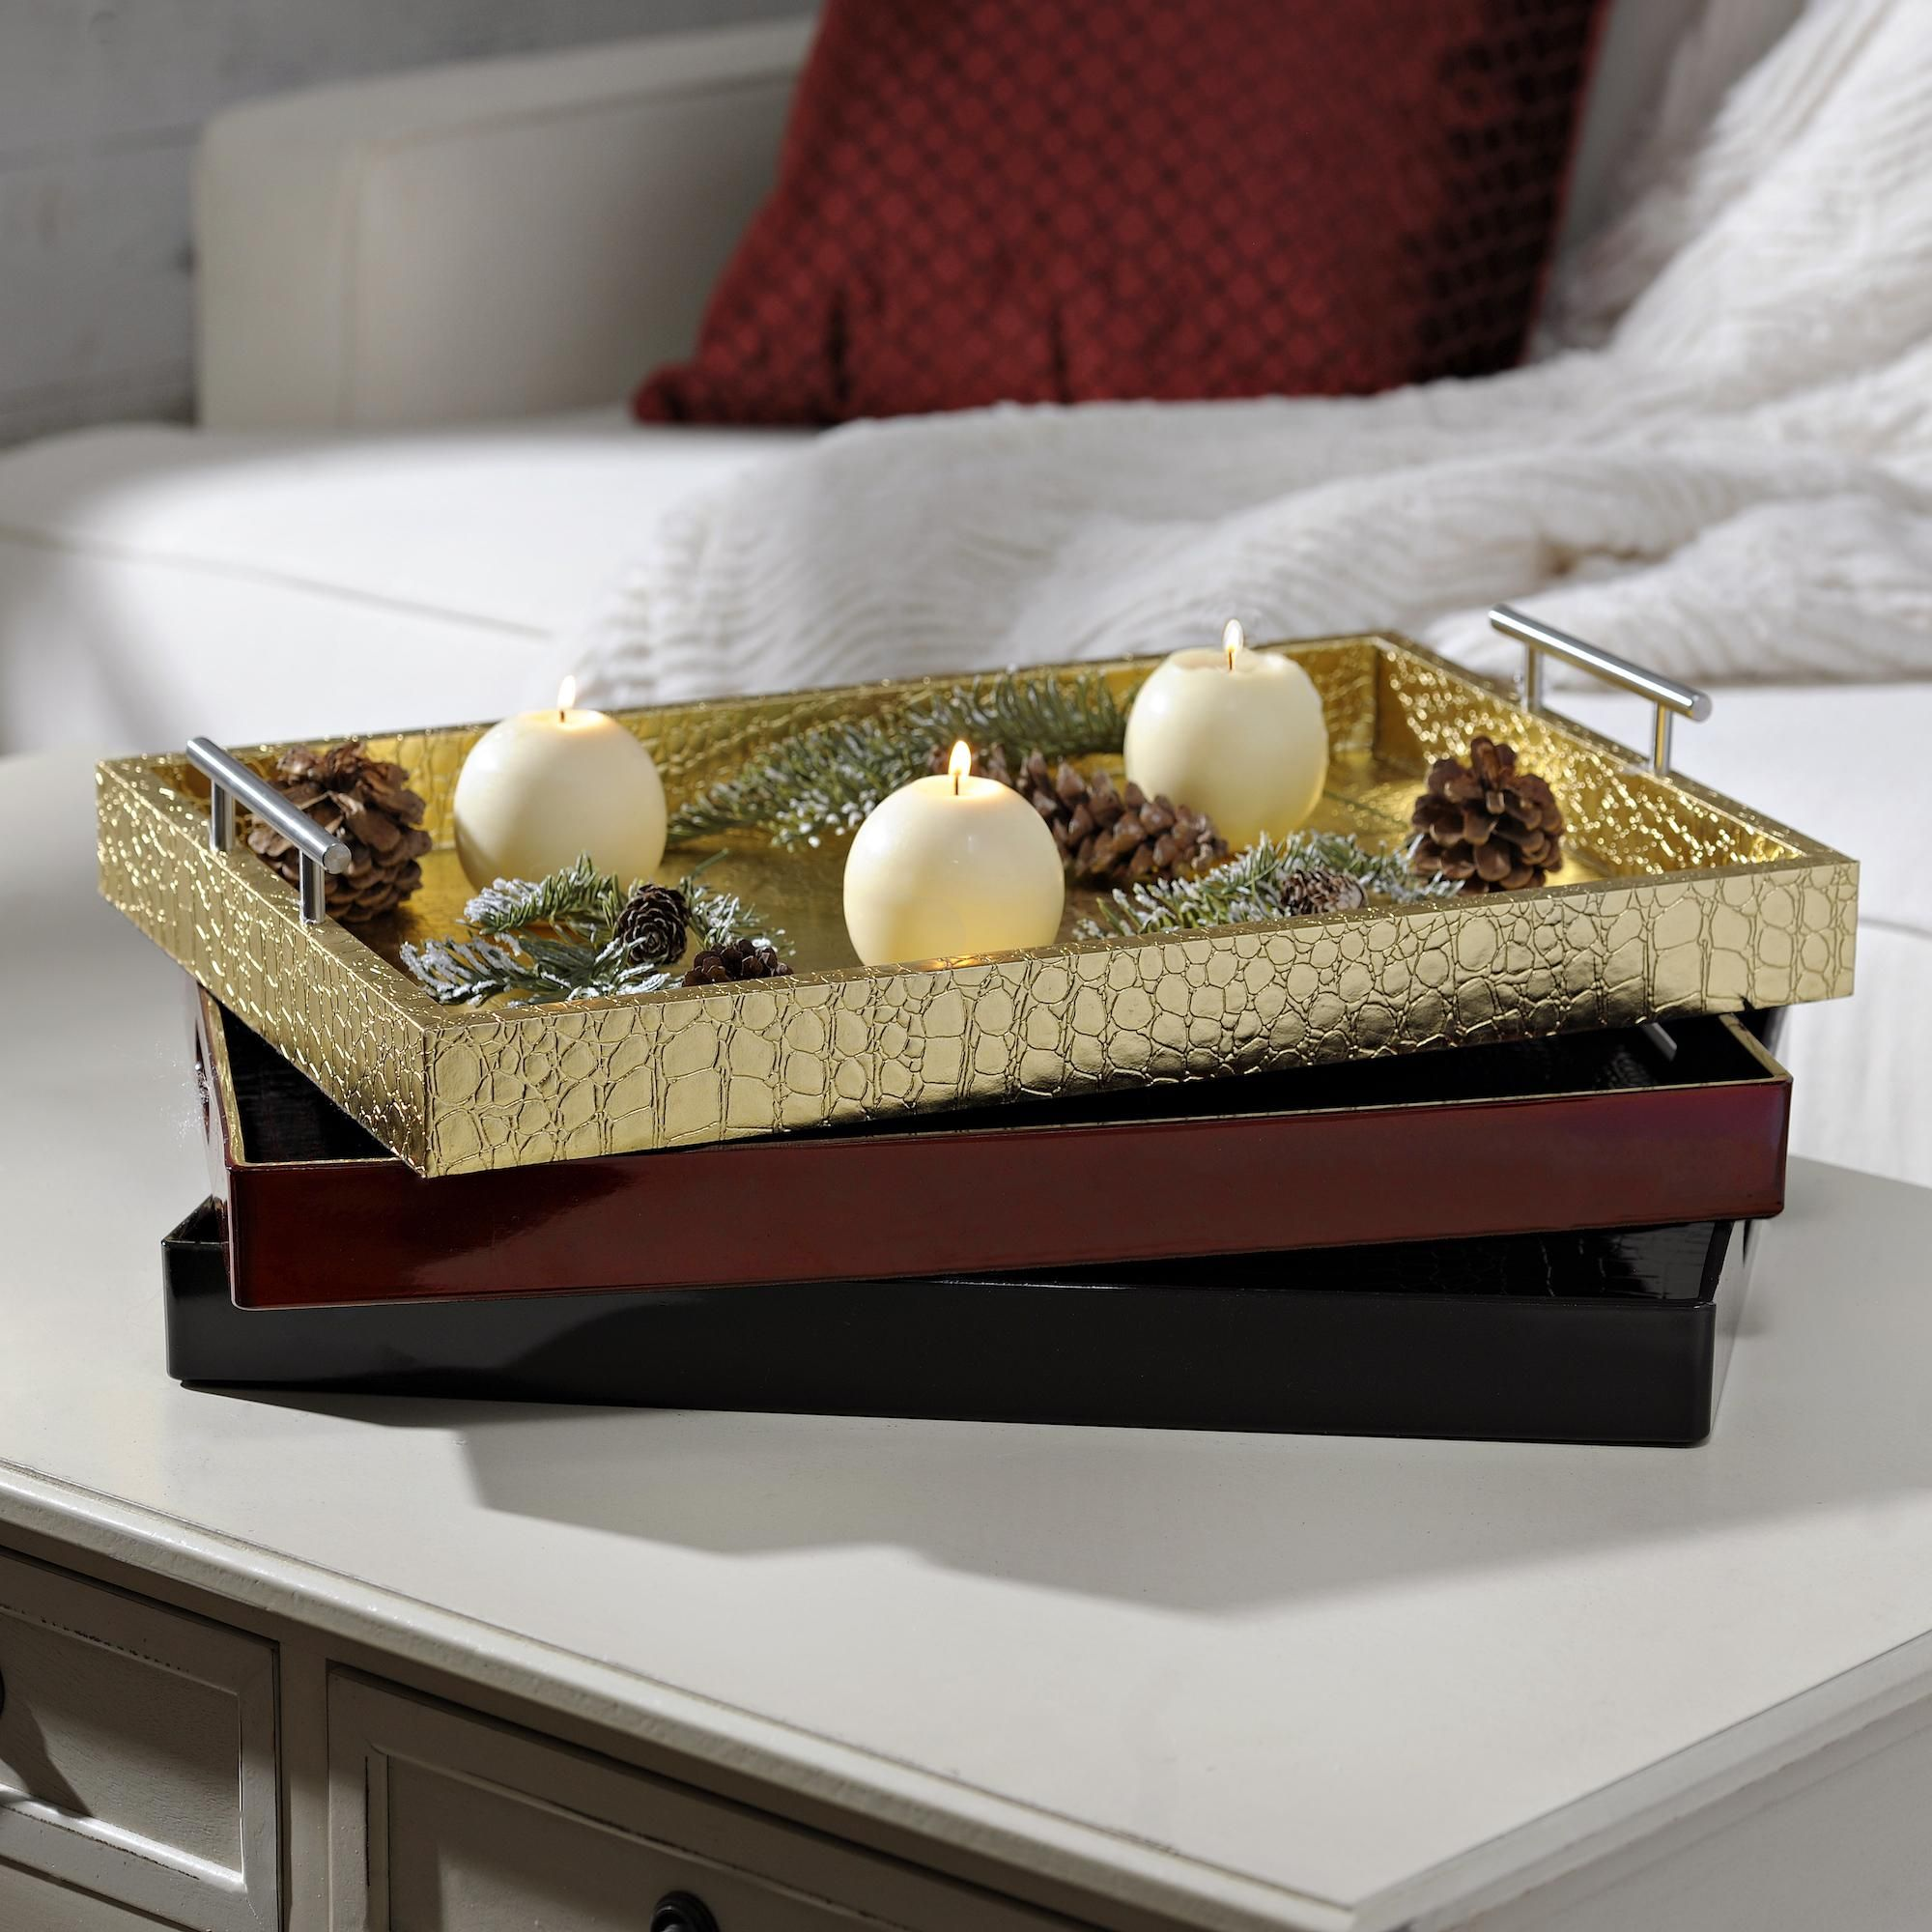 decorate your coffee table, console table or dining room table